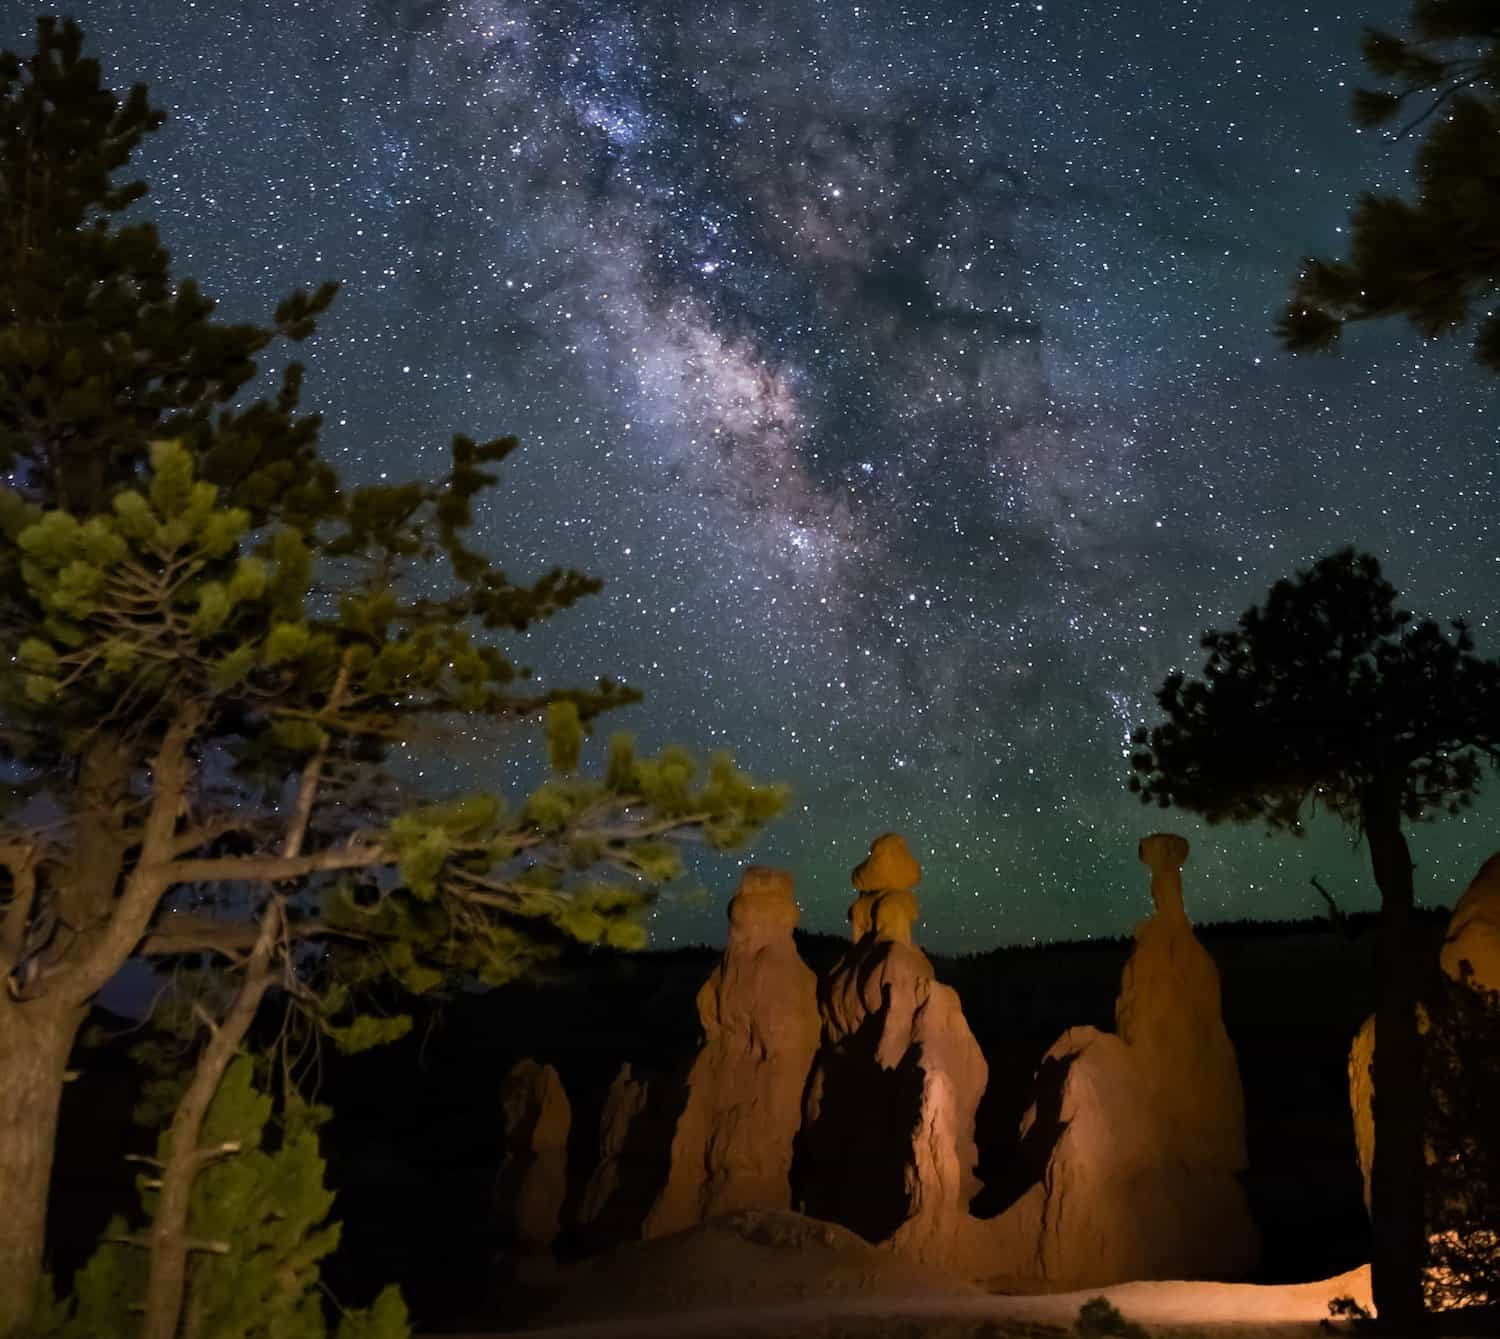 Bryce Canyon National Park Stargazing & the Milky Way - Three Wisemen formation